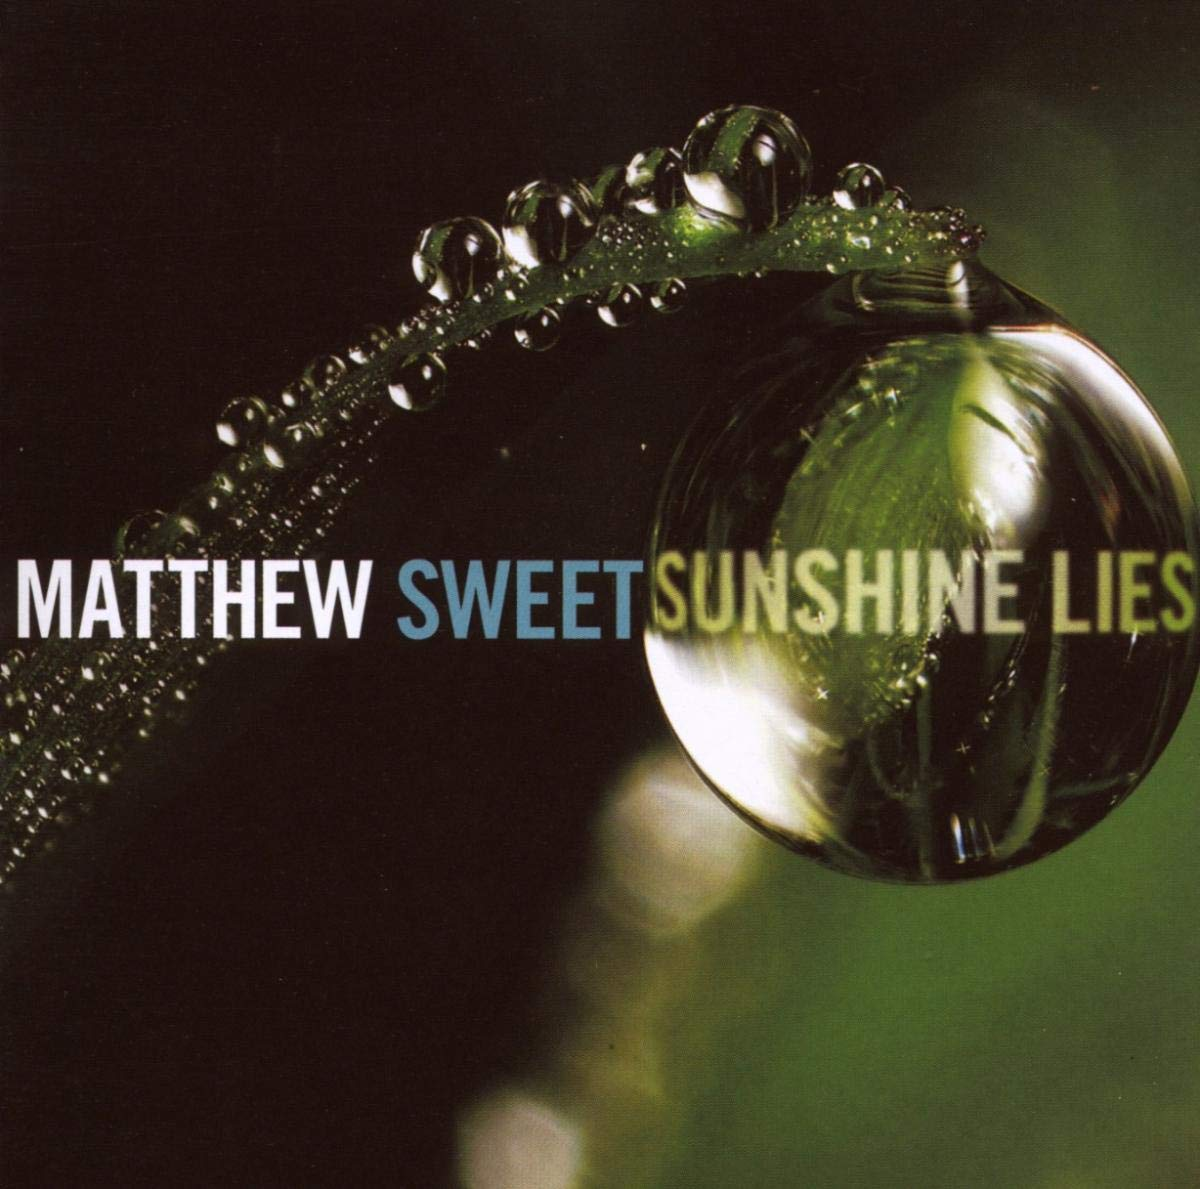 Matthew Sweet, Sunshine Lies